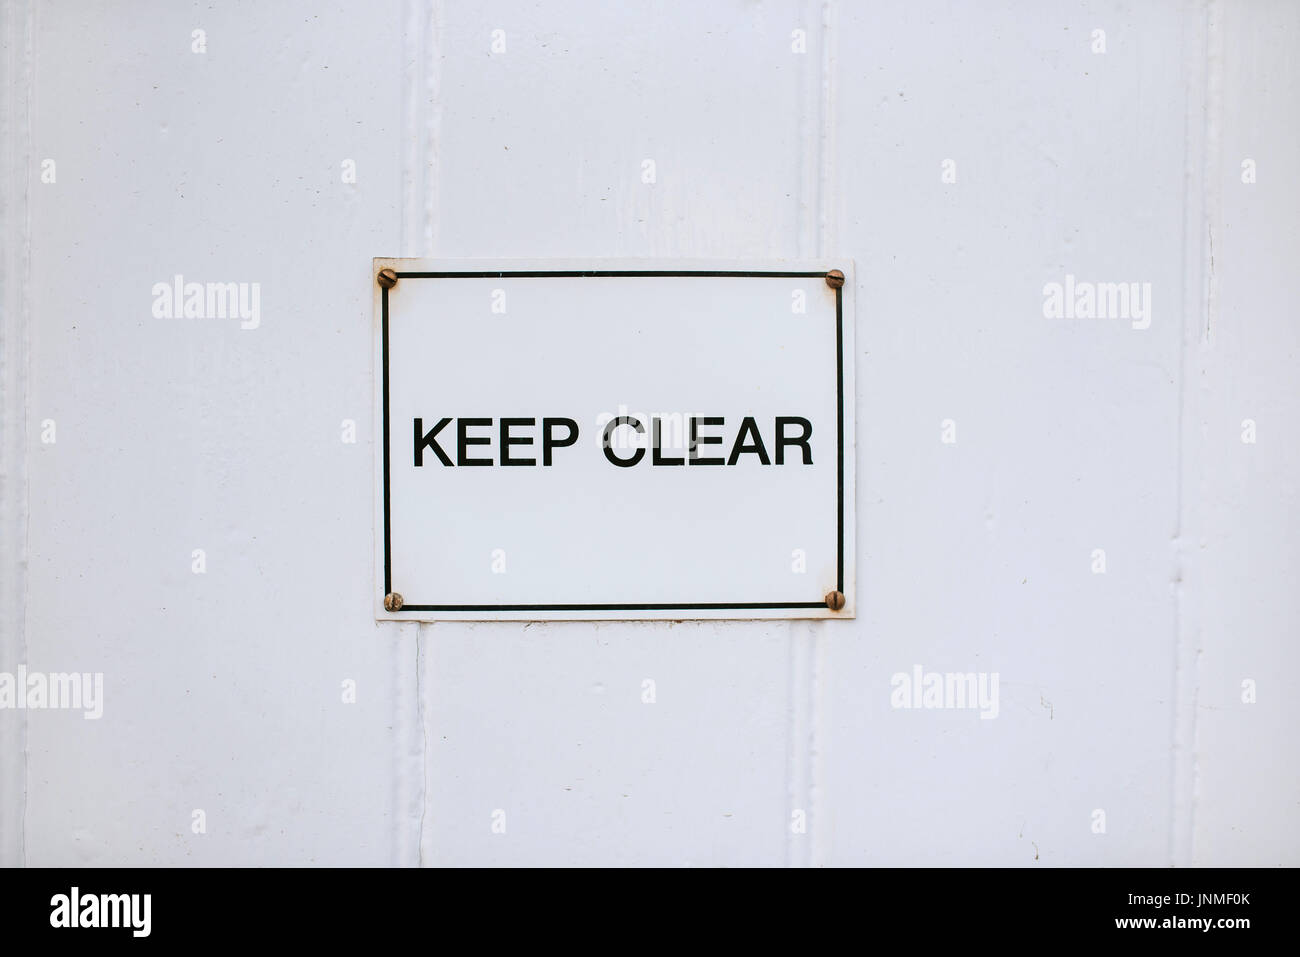 Metal keep clear sign on withe background - Stock Image